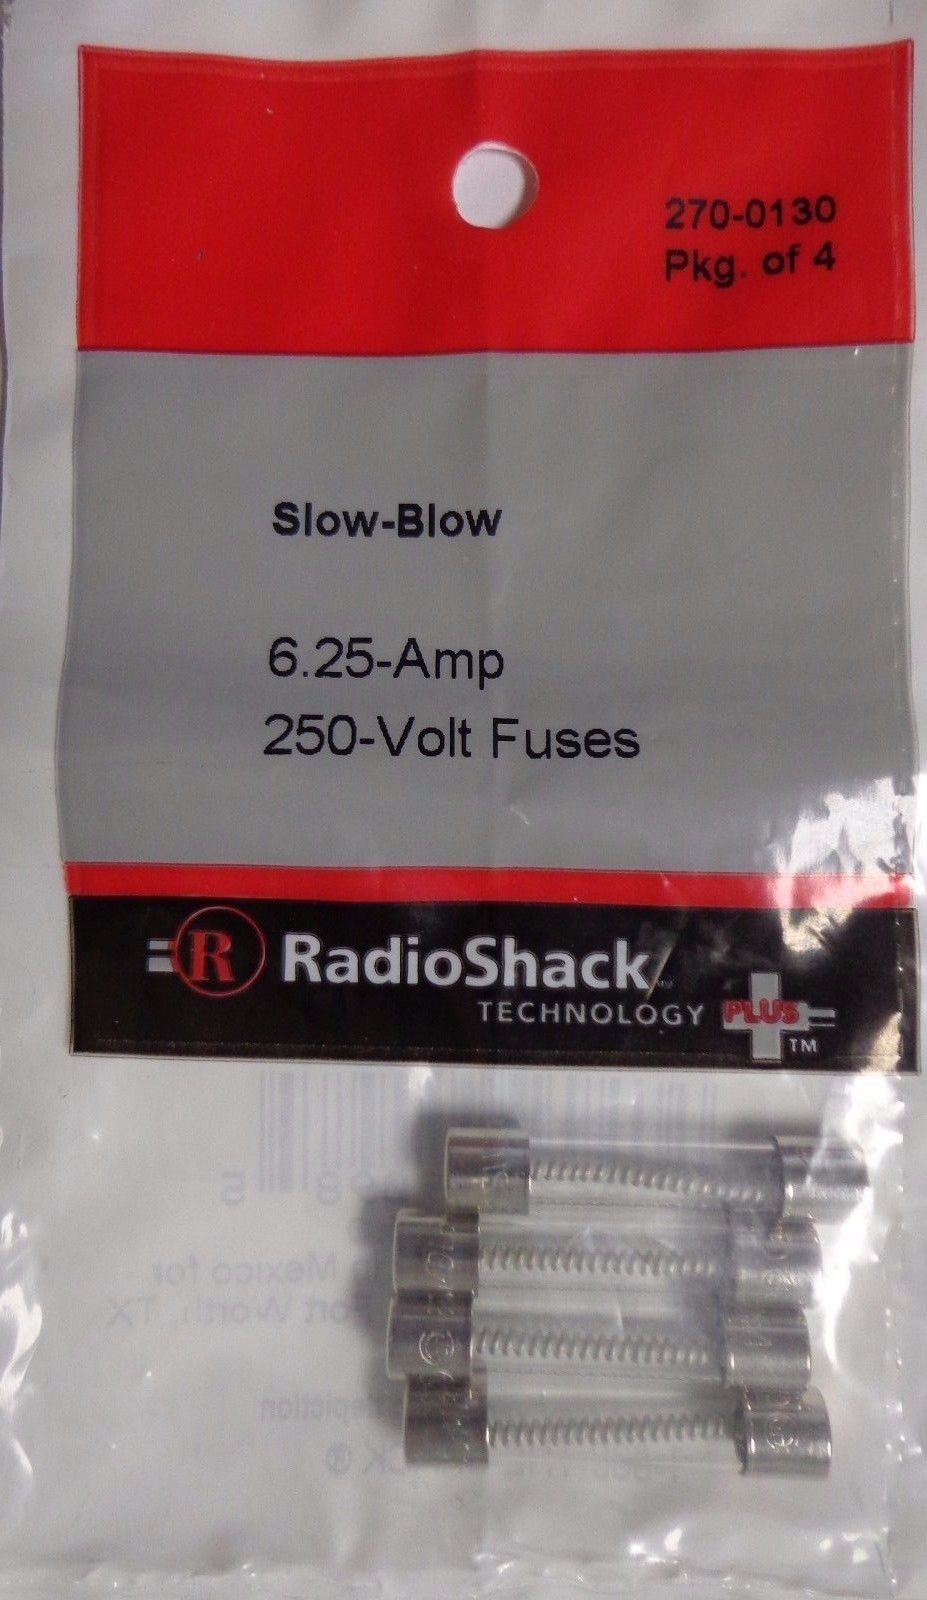 RadioShack Slow-Blow 6.25-Amp 250-Volt Fuses Pack Of 4, 270-0130 -2